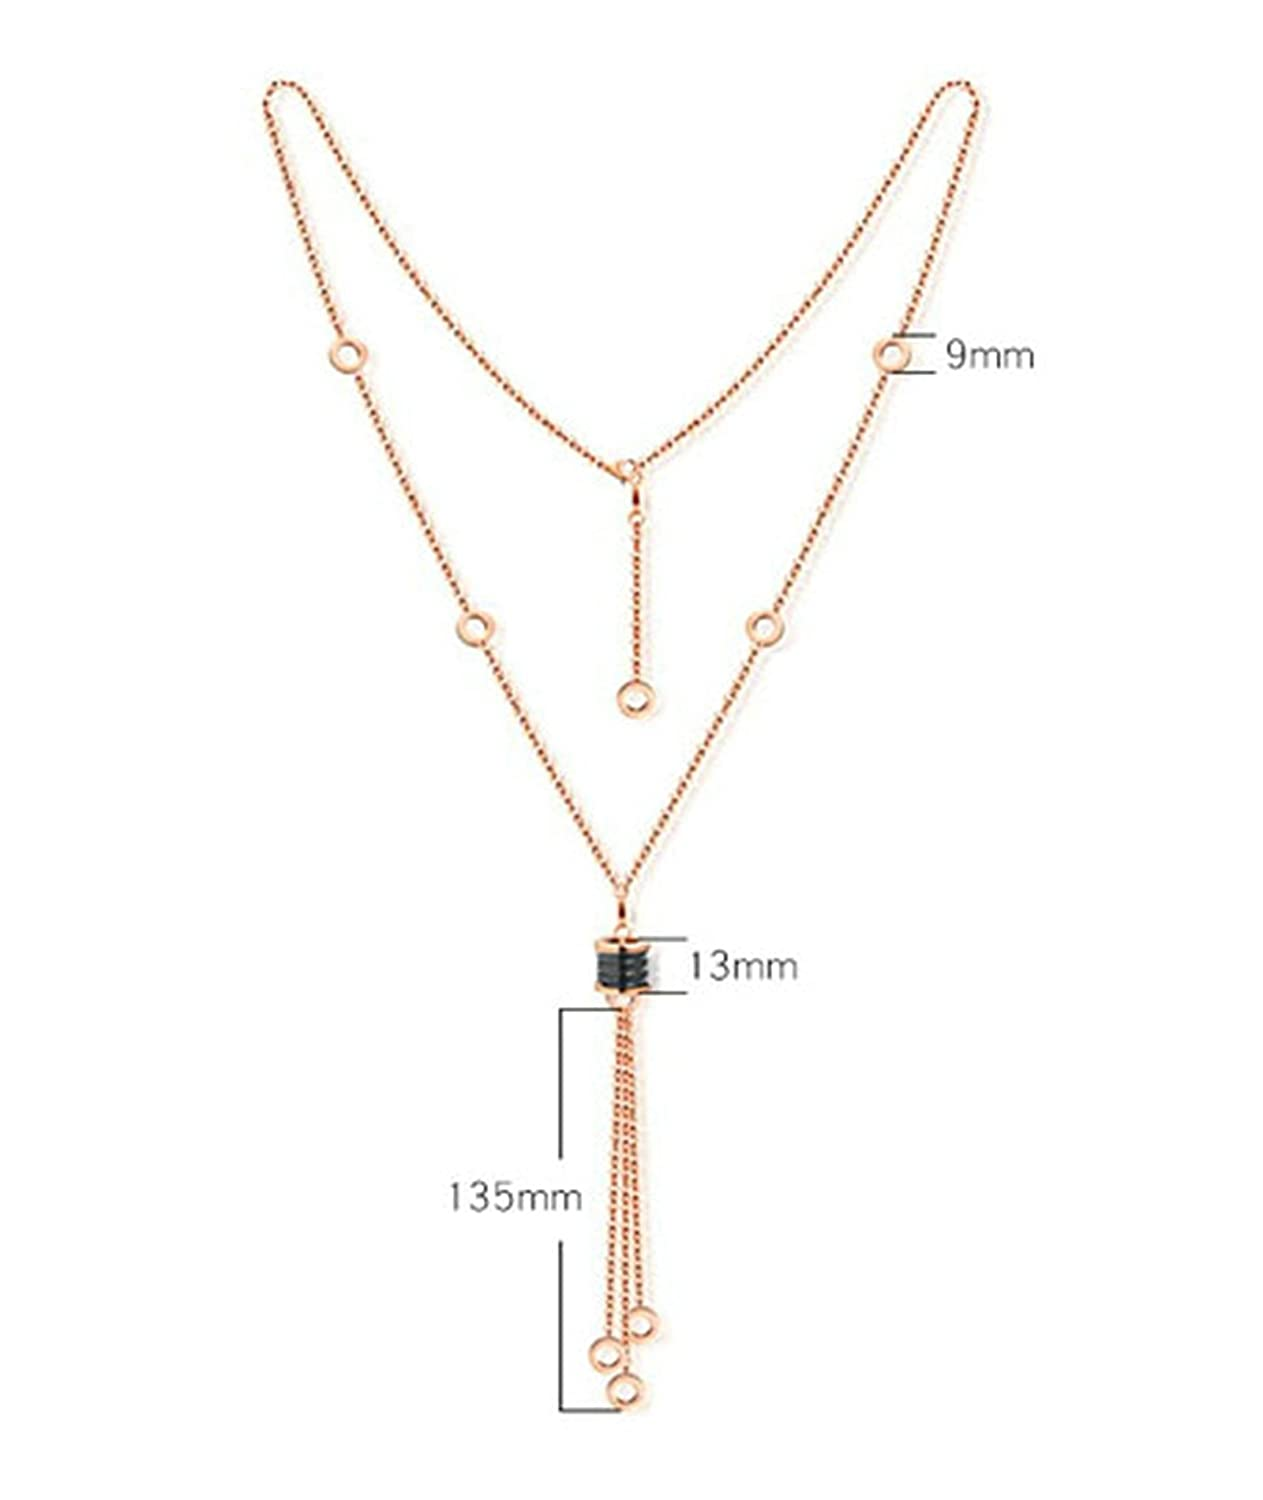 6Cm Novelty Jewelry Gift Aooaz Gold Plated Necklace For Women Circle Tassels Rose Gold Chain Length 71